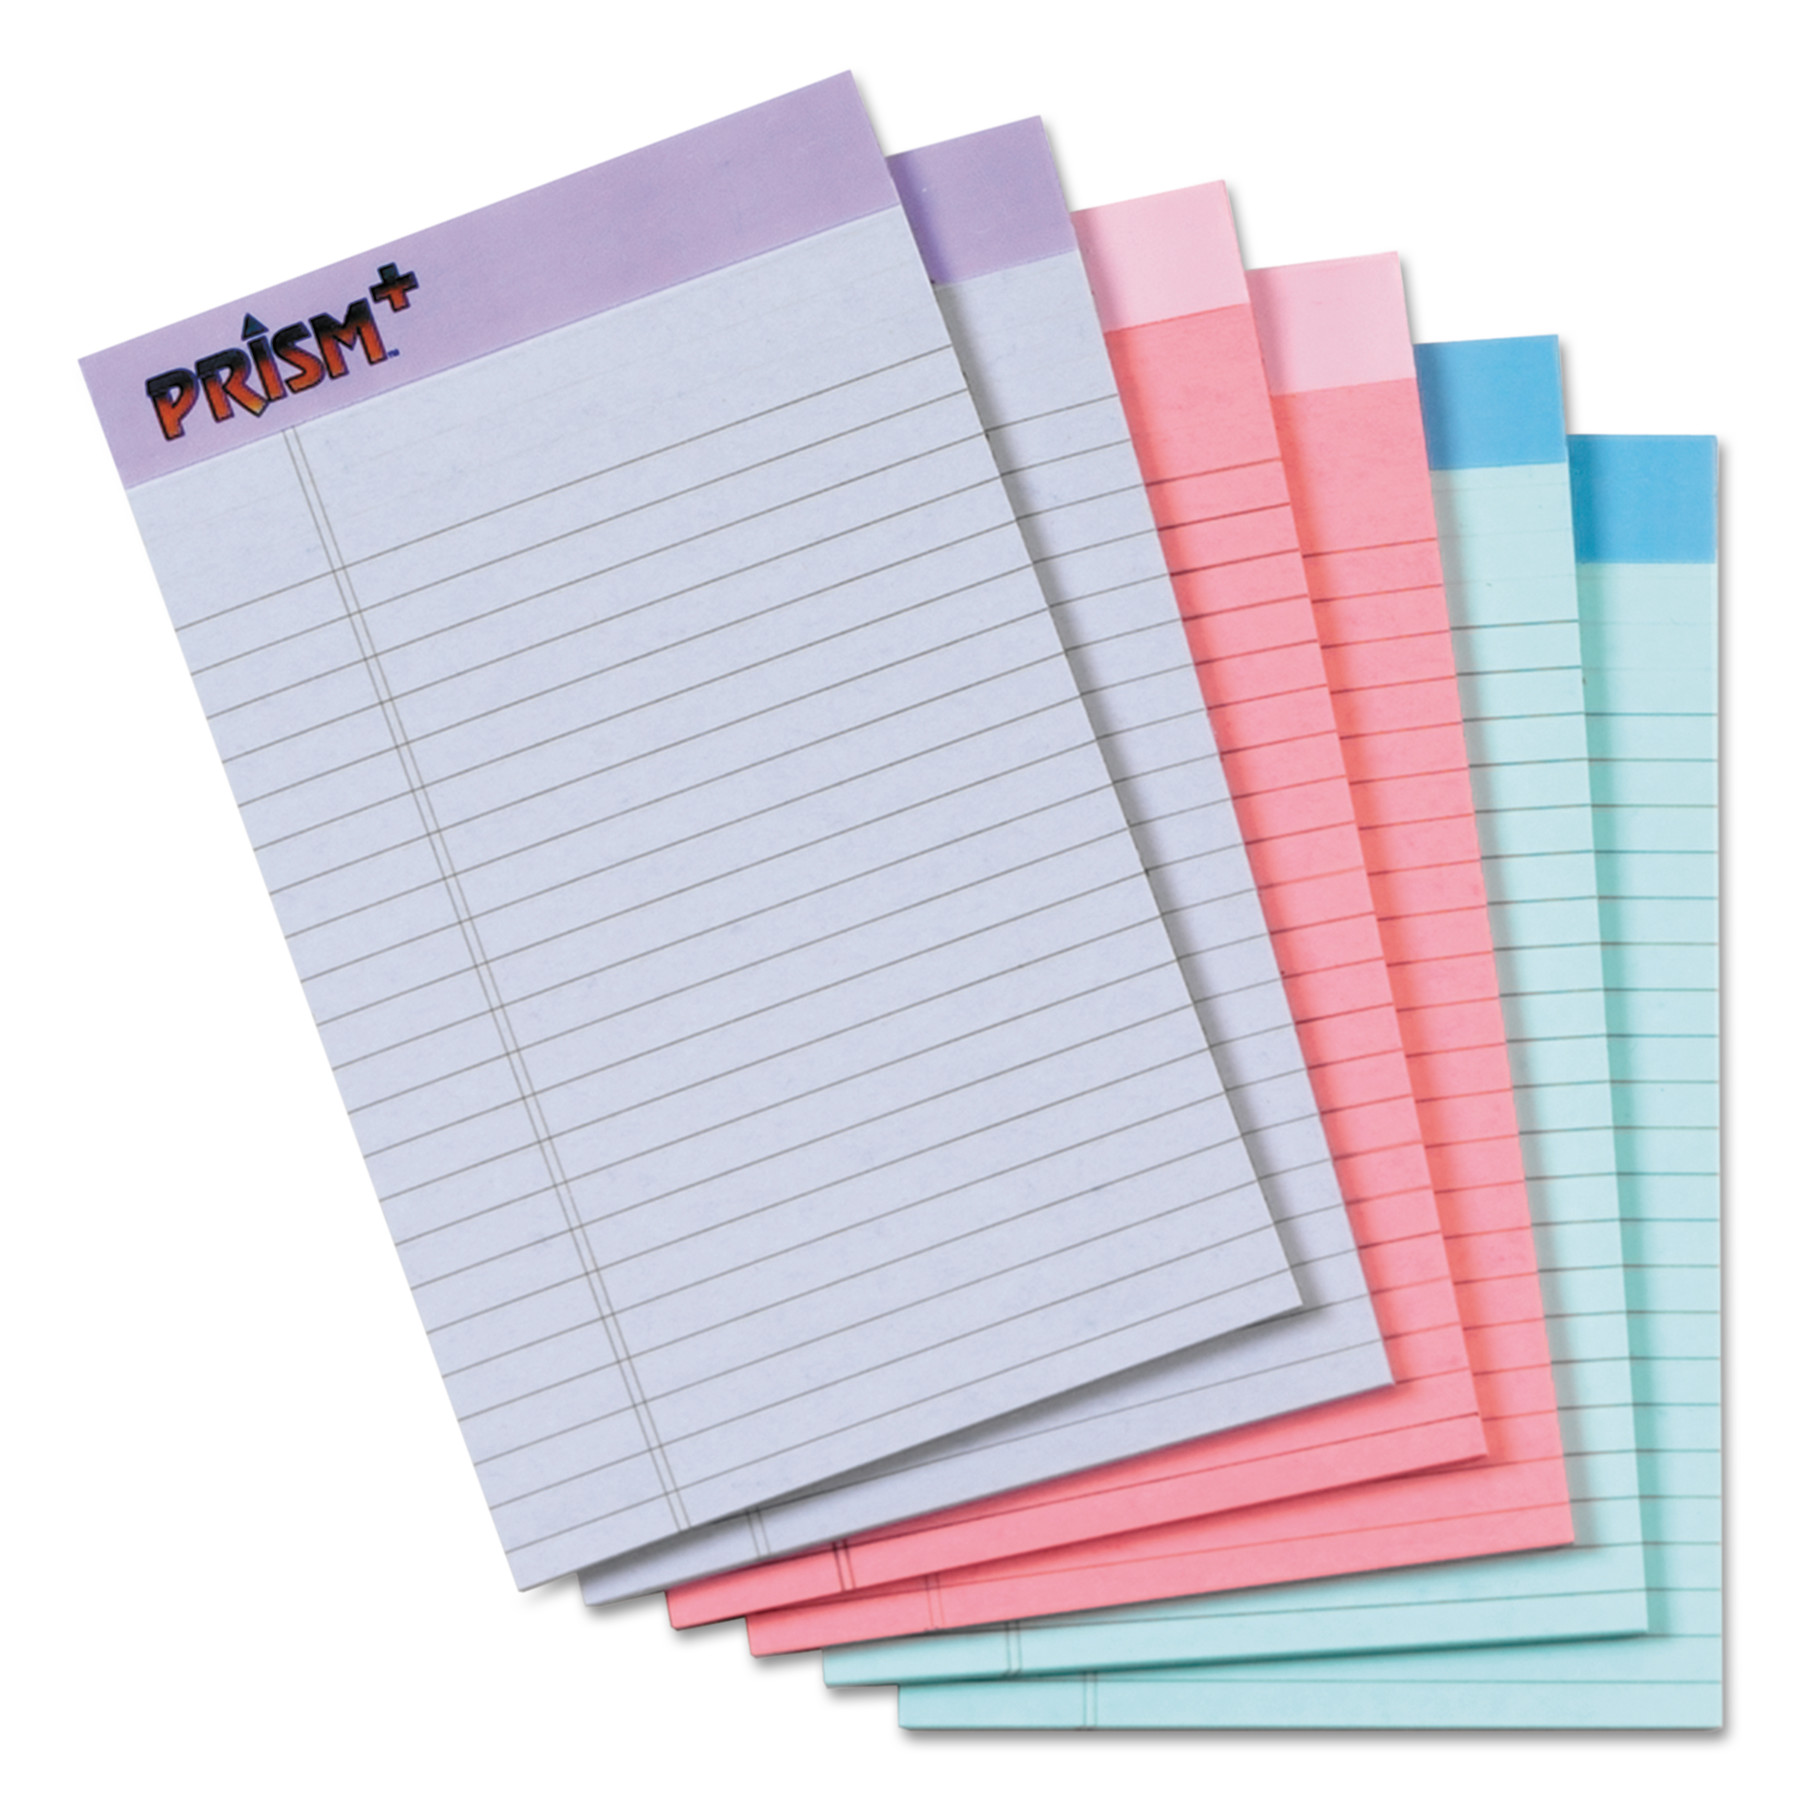 TOPS Prism Plus Colored Legal Pads, 5 x 8, Pastels, 50 Sheets, 6 Pads/Pack -TOP63016